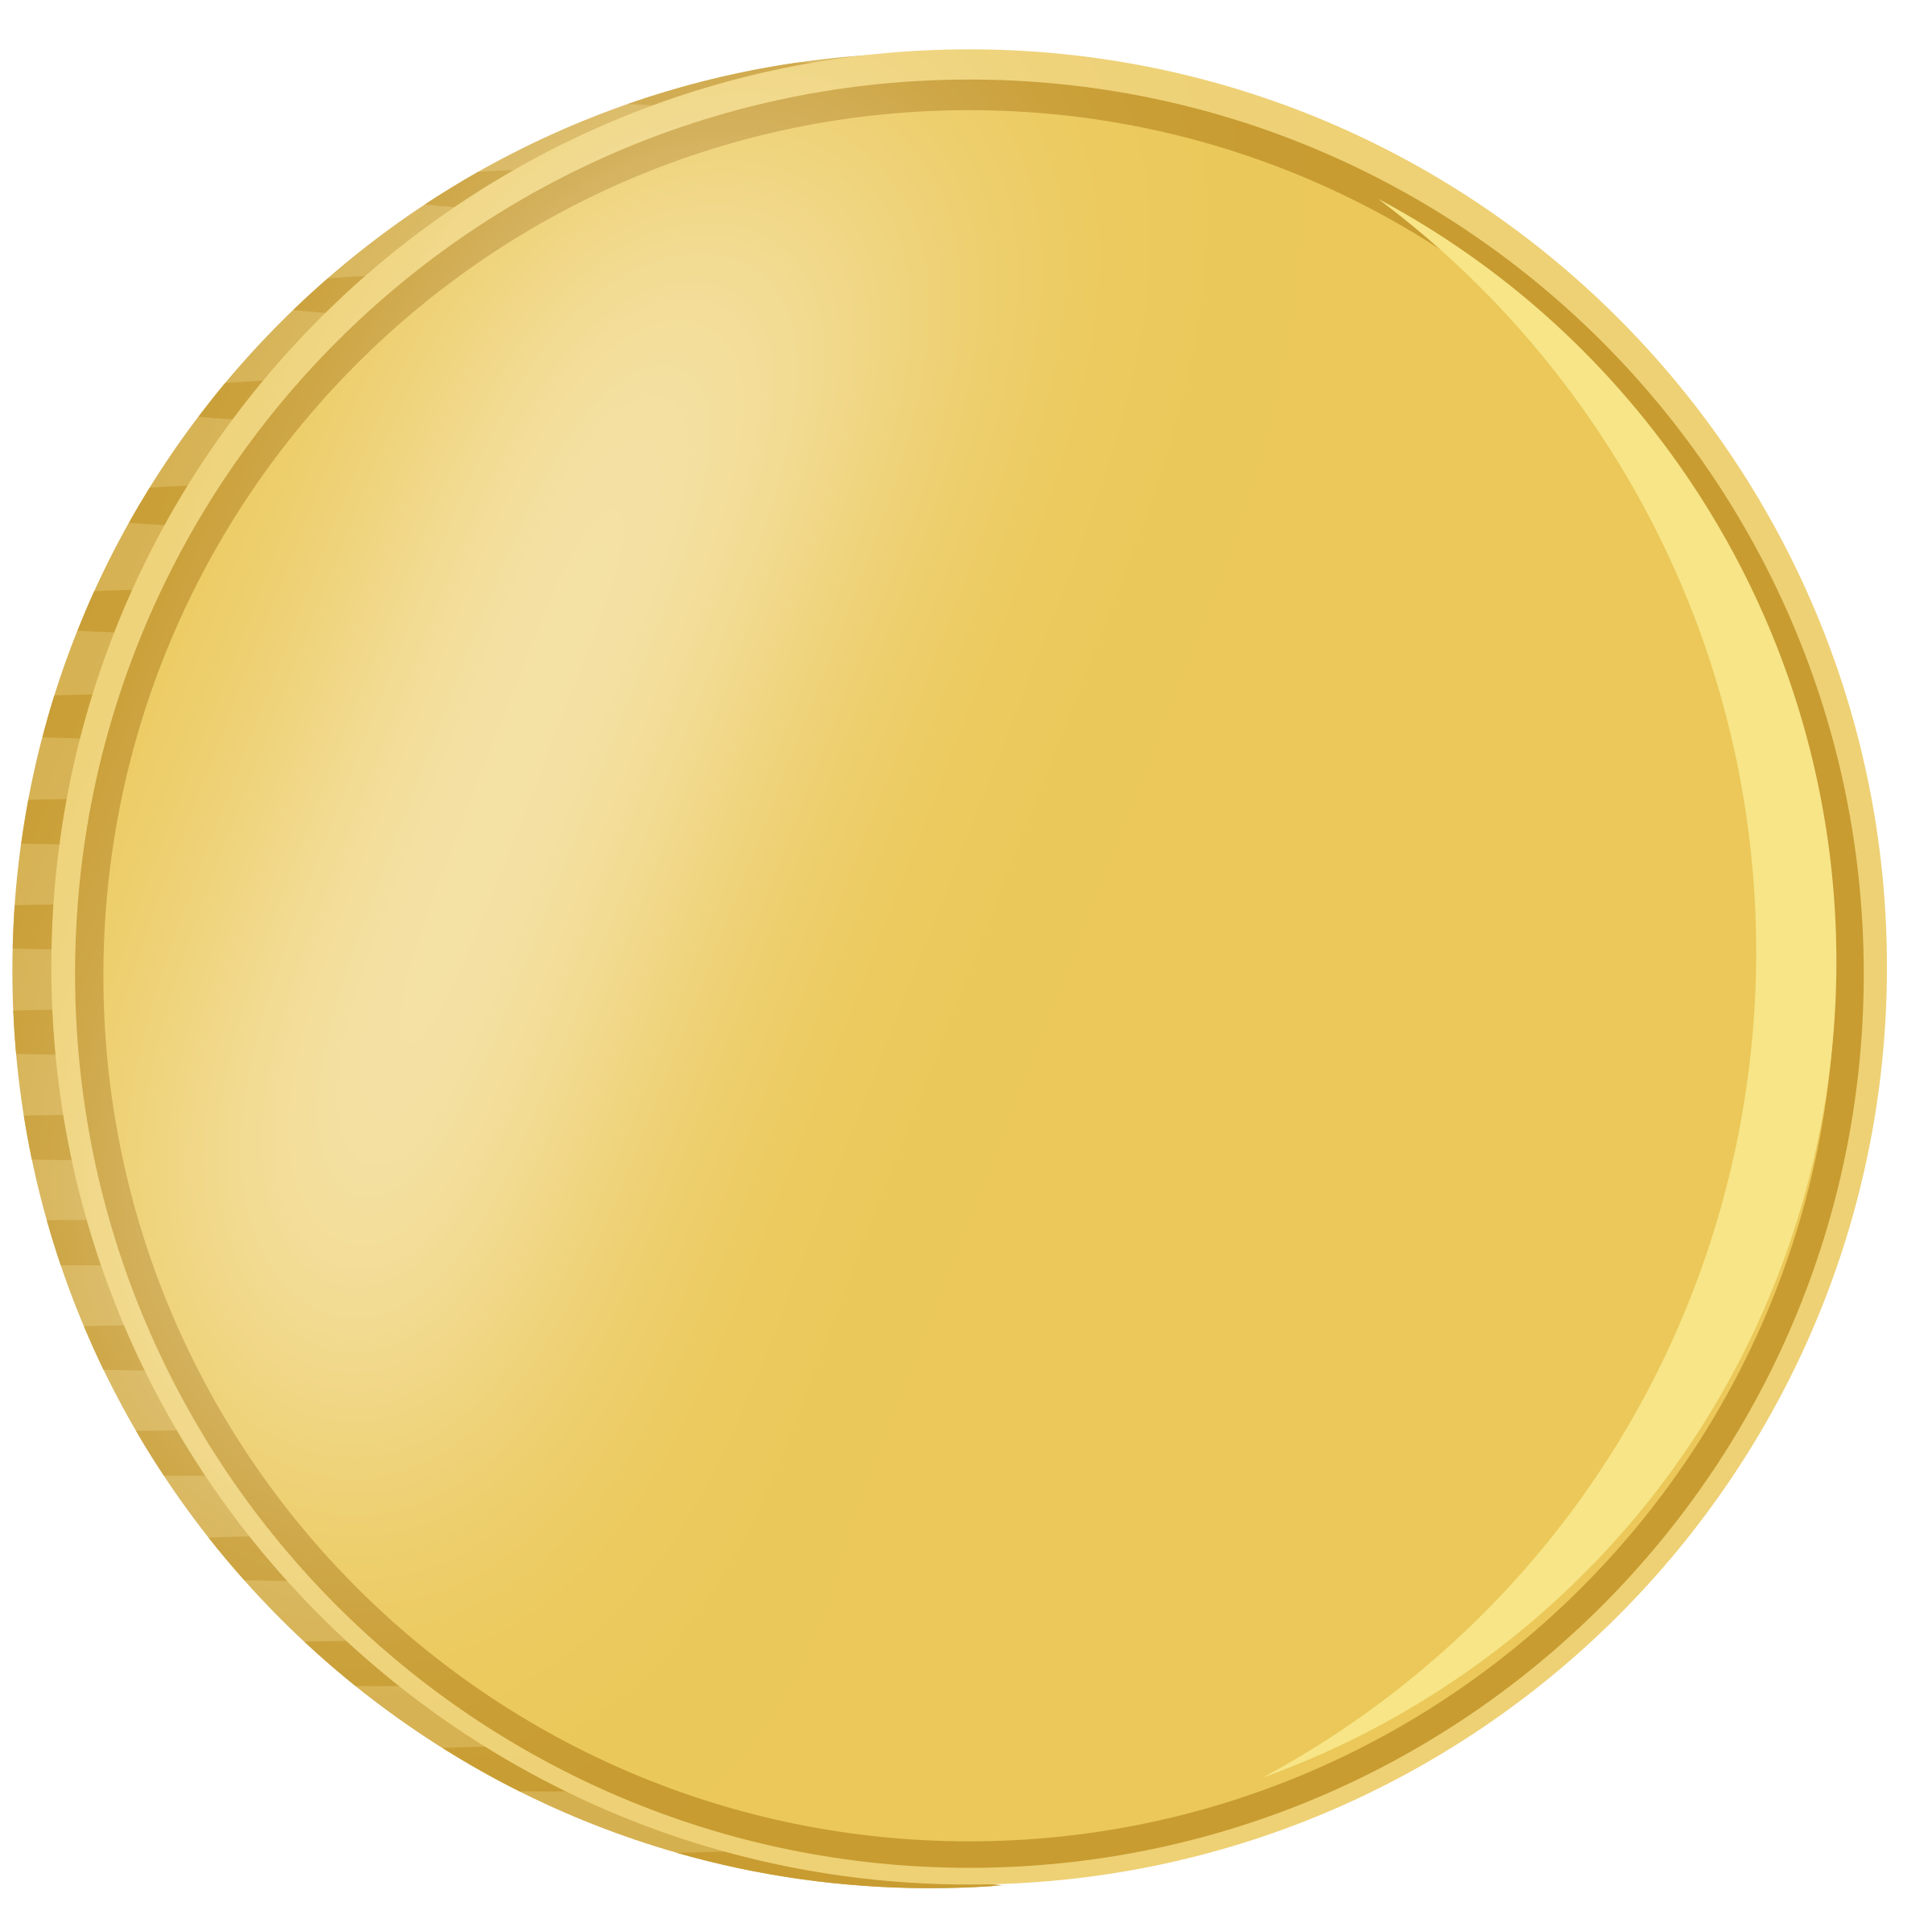 Blank Coin PNG - 152452